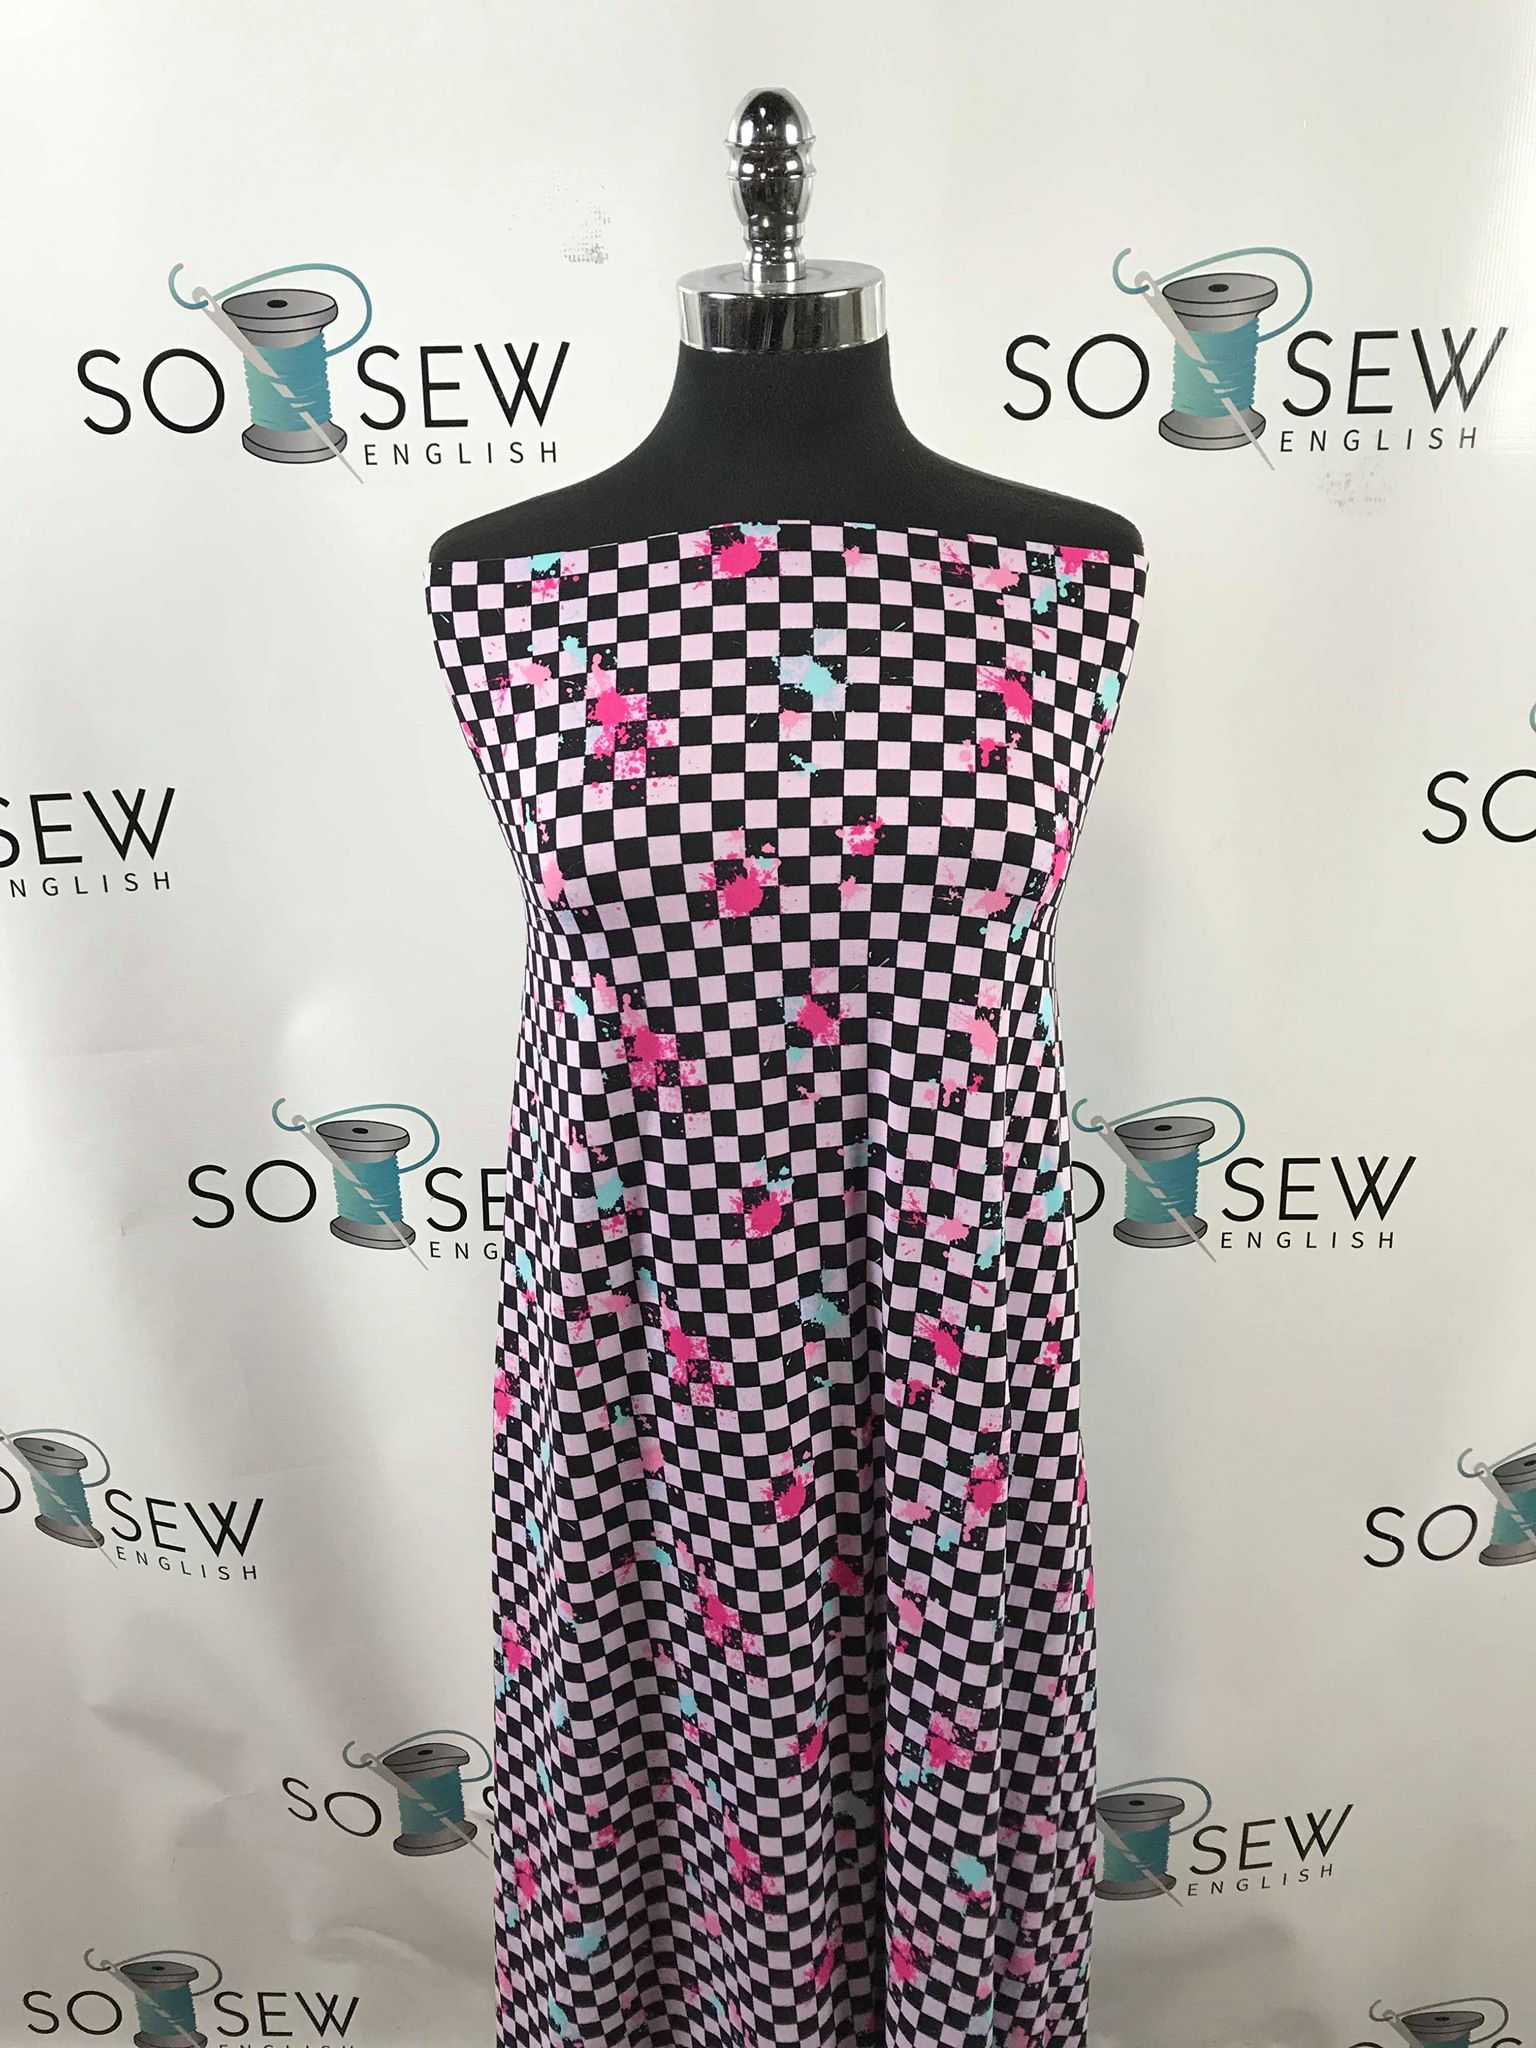 SPLATTER CHECK- Double Brushed Poly Spandex -By The Yard (checker)